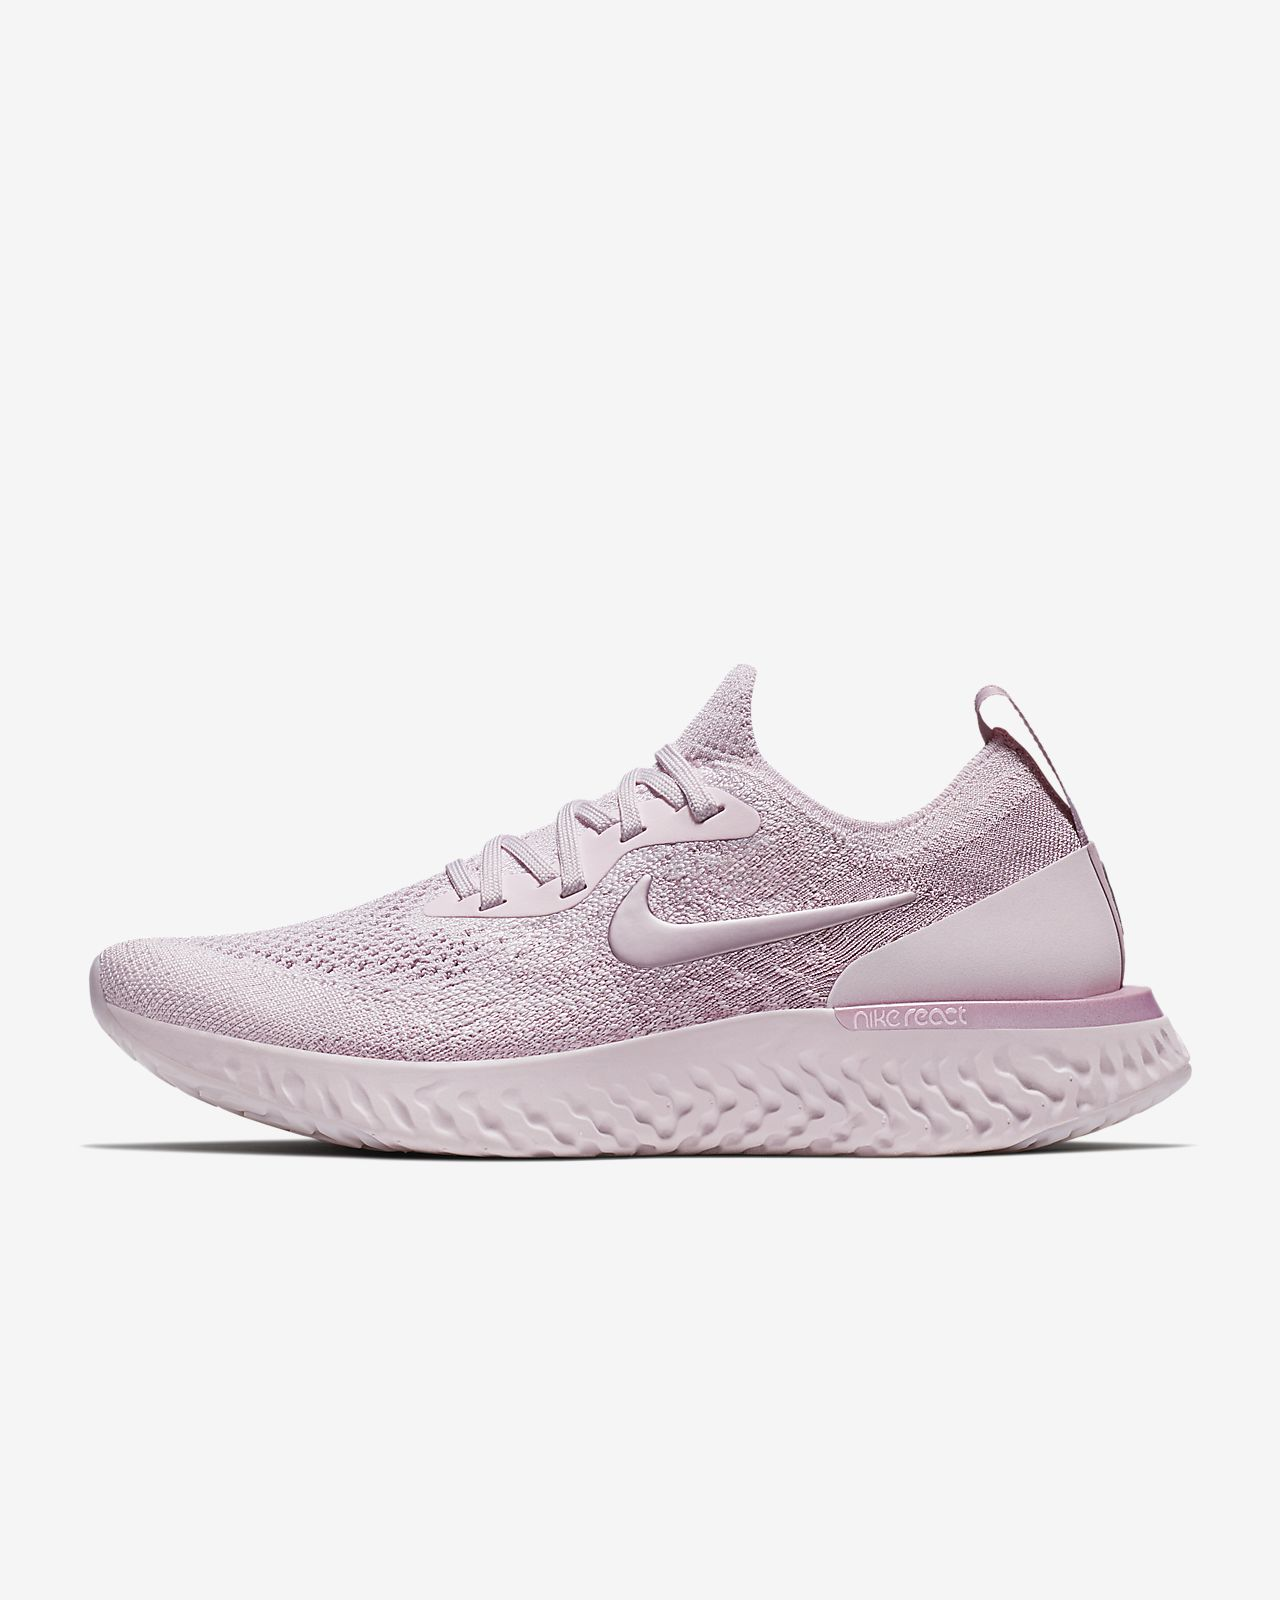 Epic React Flyknit Lo Sneaker chaussures rose roseNike